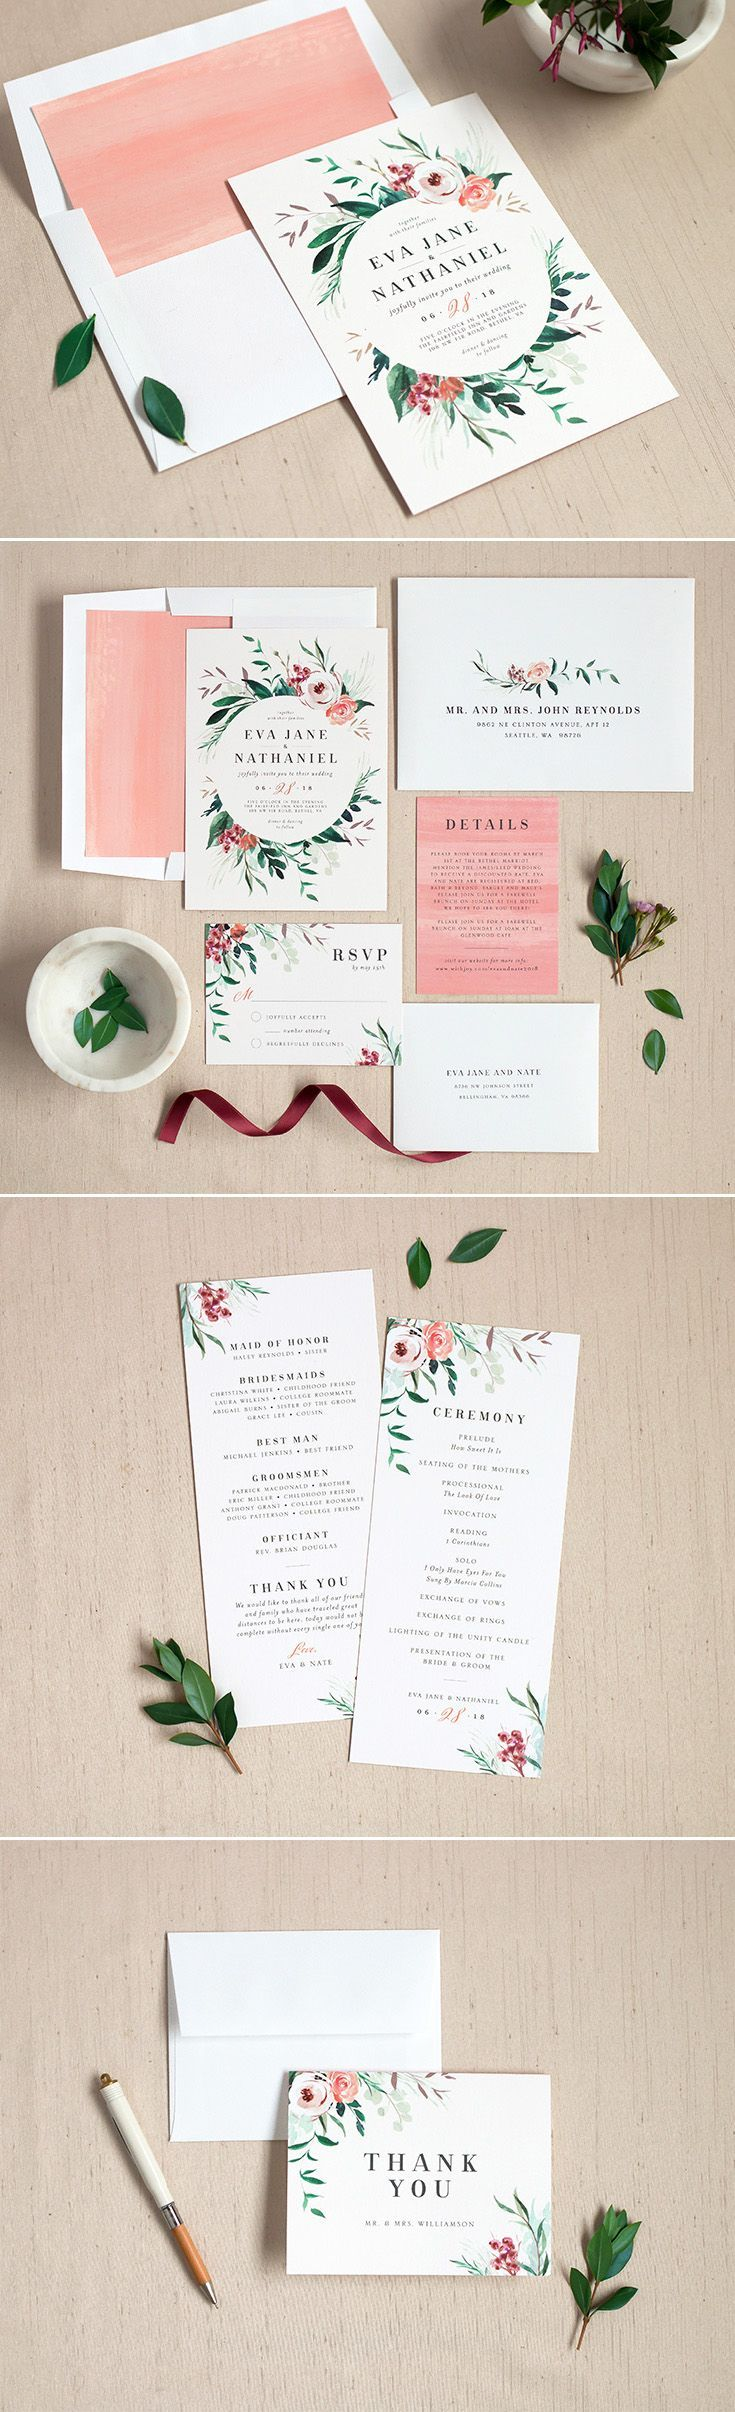 Wild Wreath Wedding Invitation Suite With Gorgeous Florals And